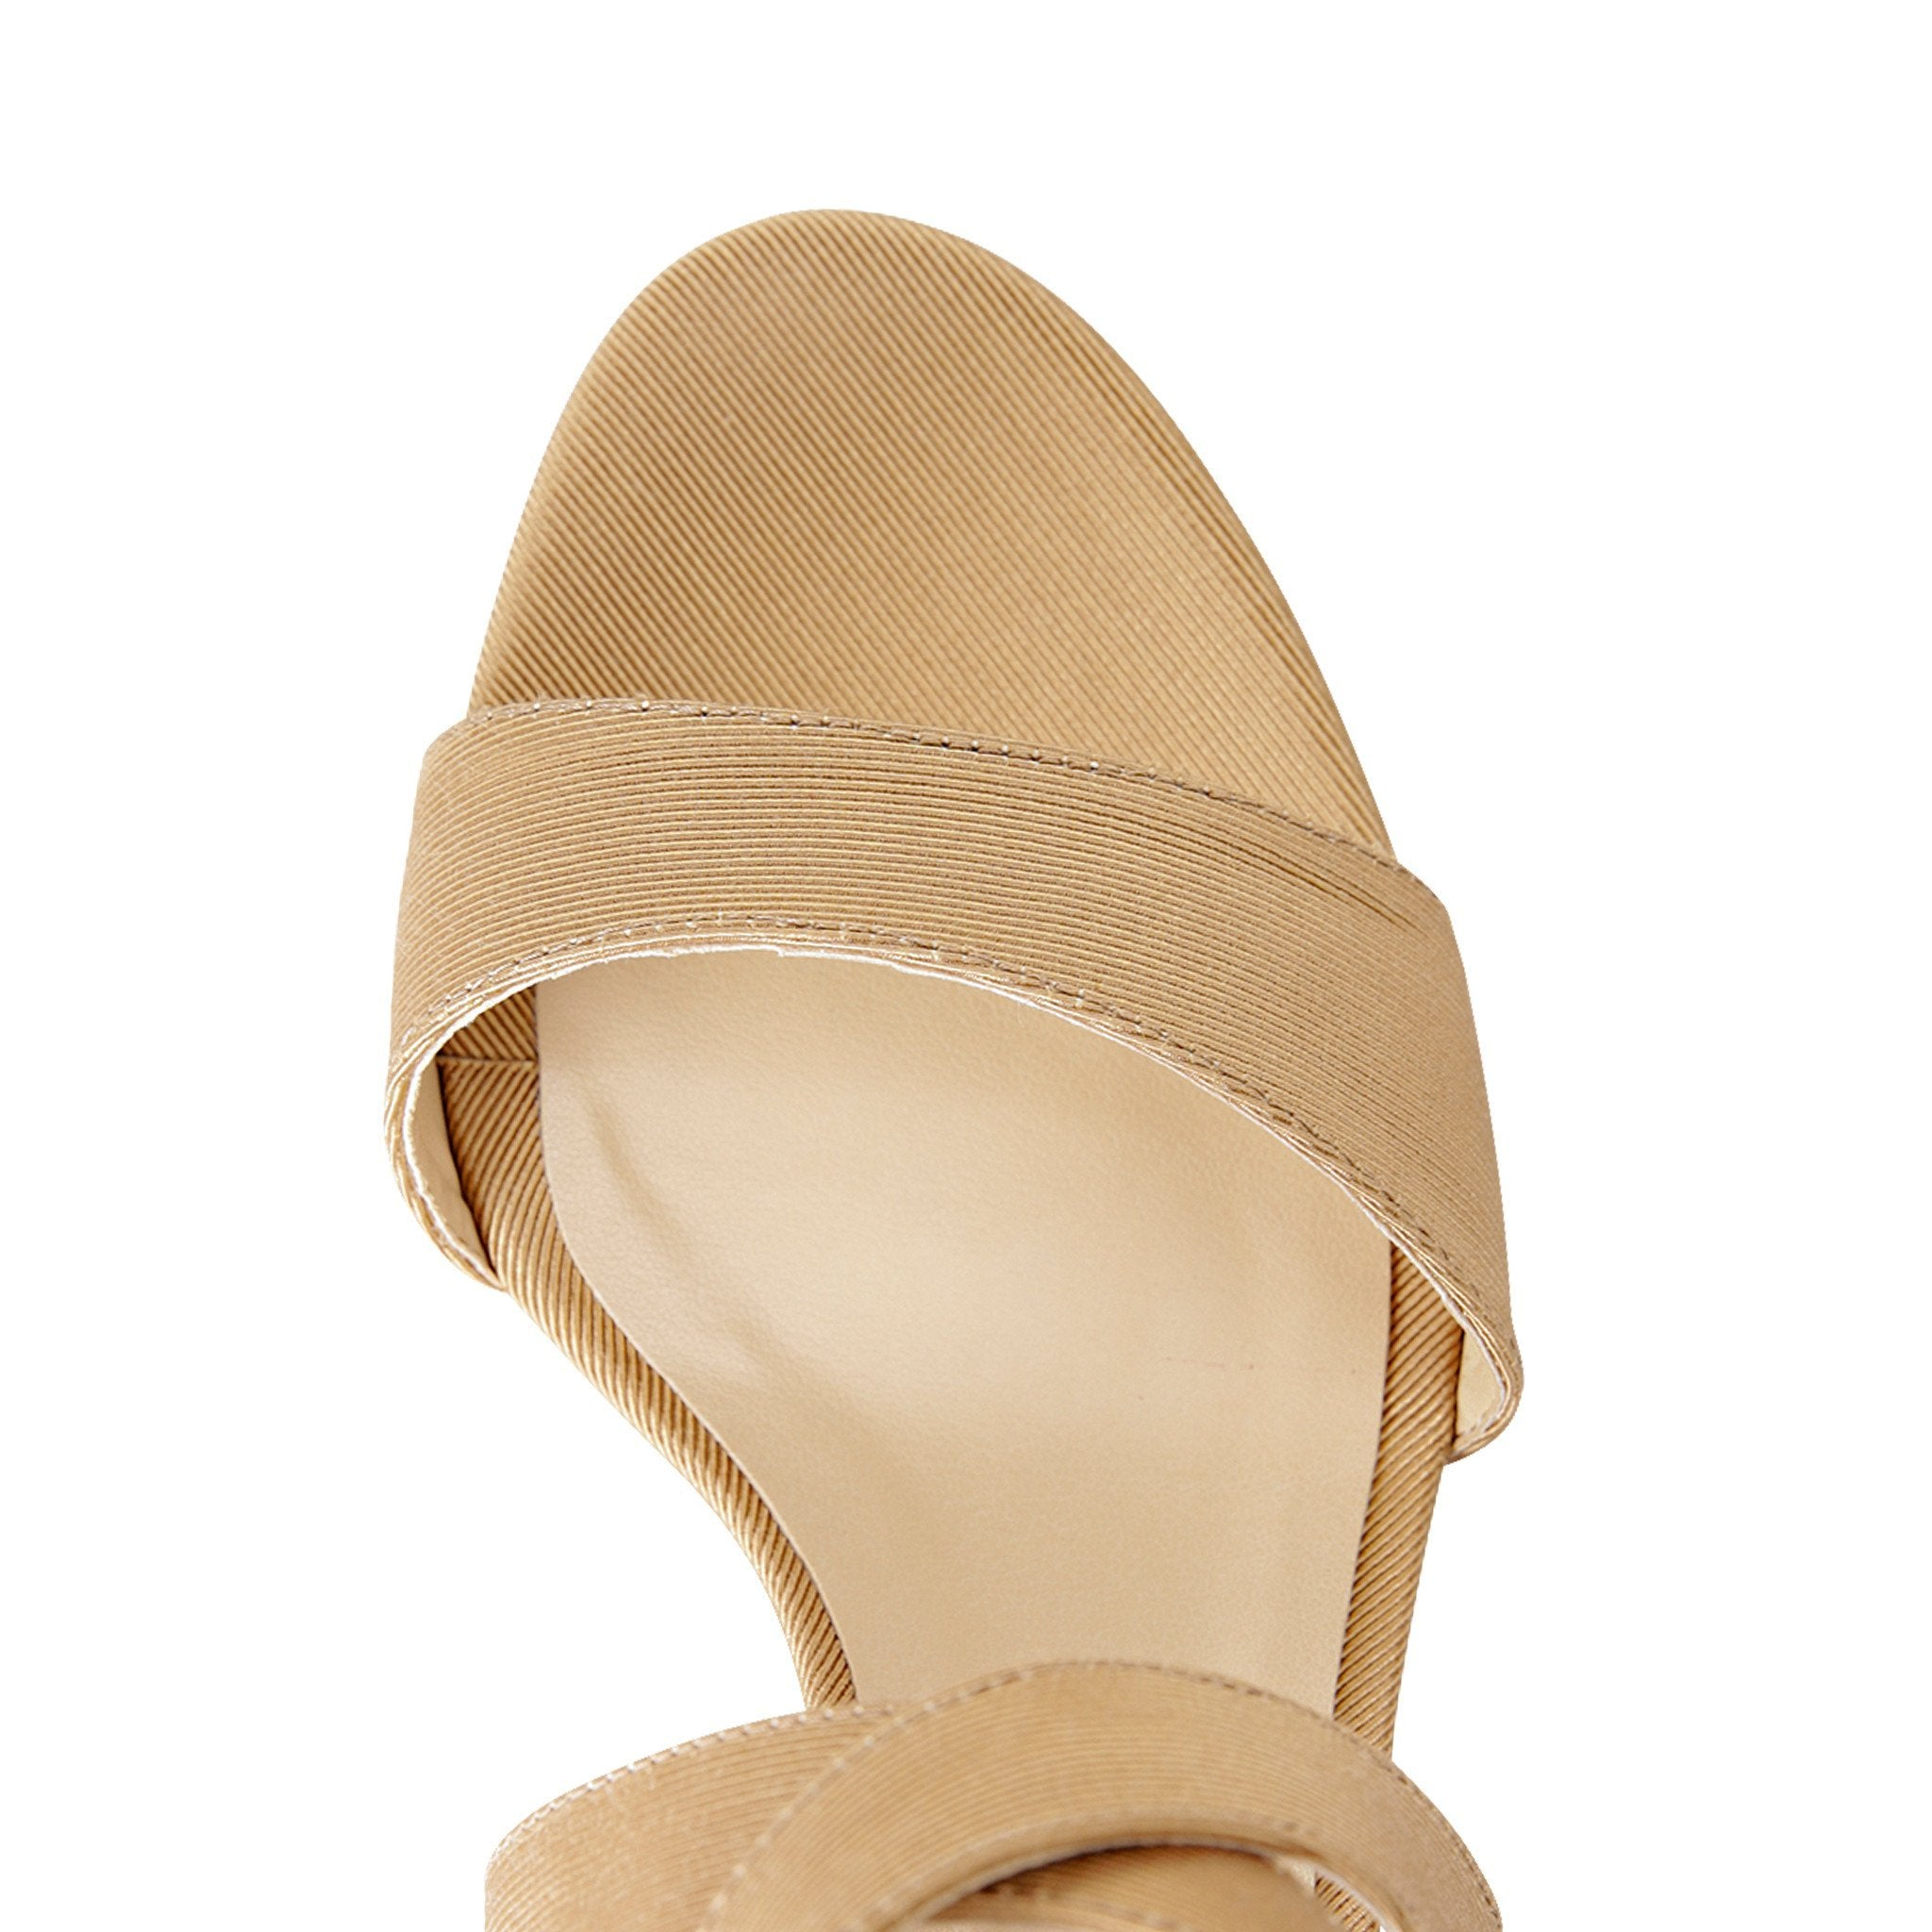 MODENA - Textile Grosgrain Sunrise Beige, VIAJIYU - Women's Hand Made Sustainable Luxury Shoes. Made in Italy. Made to Order.